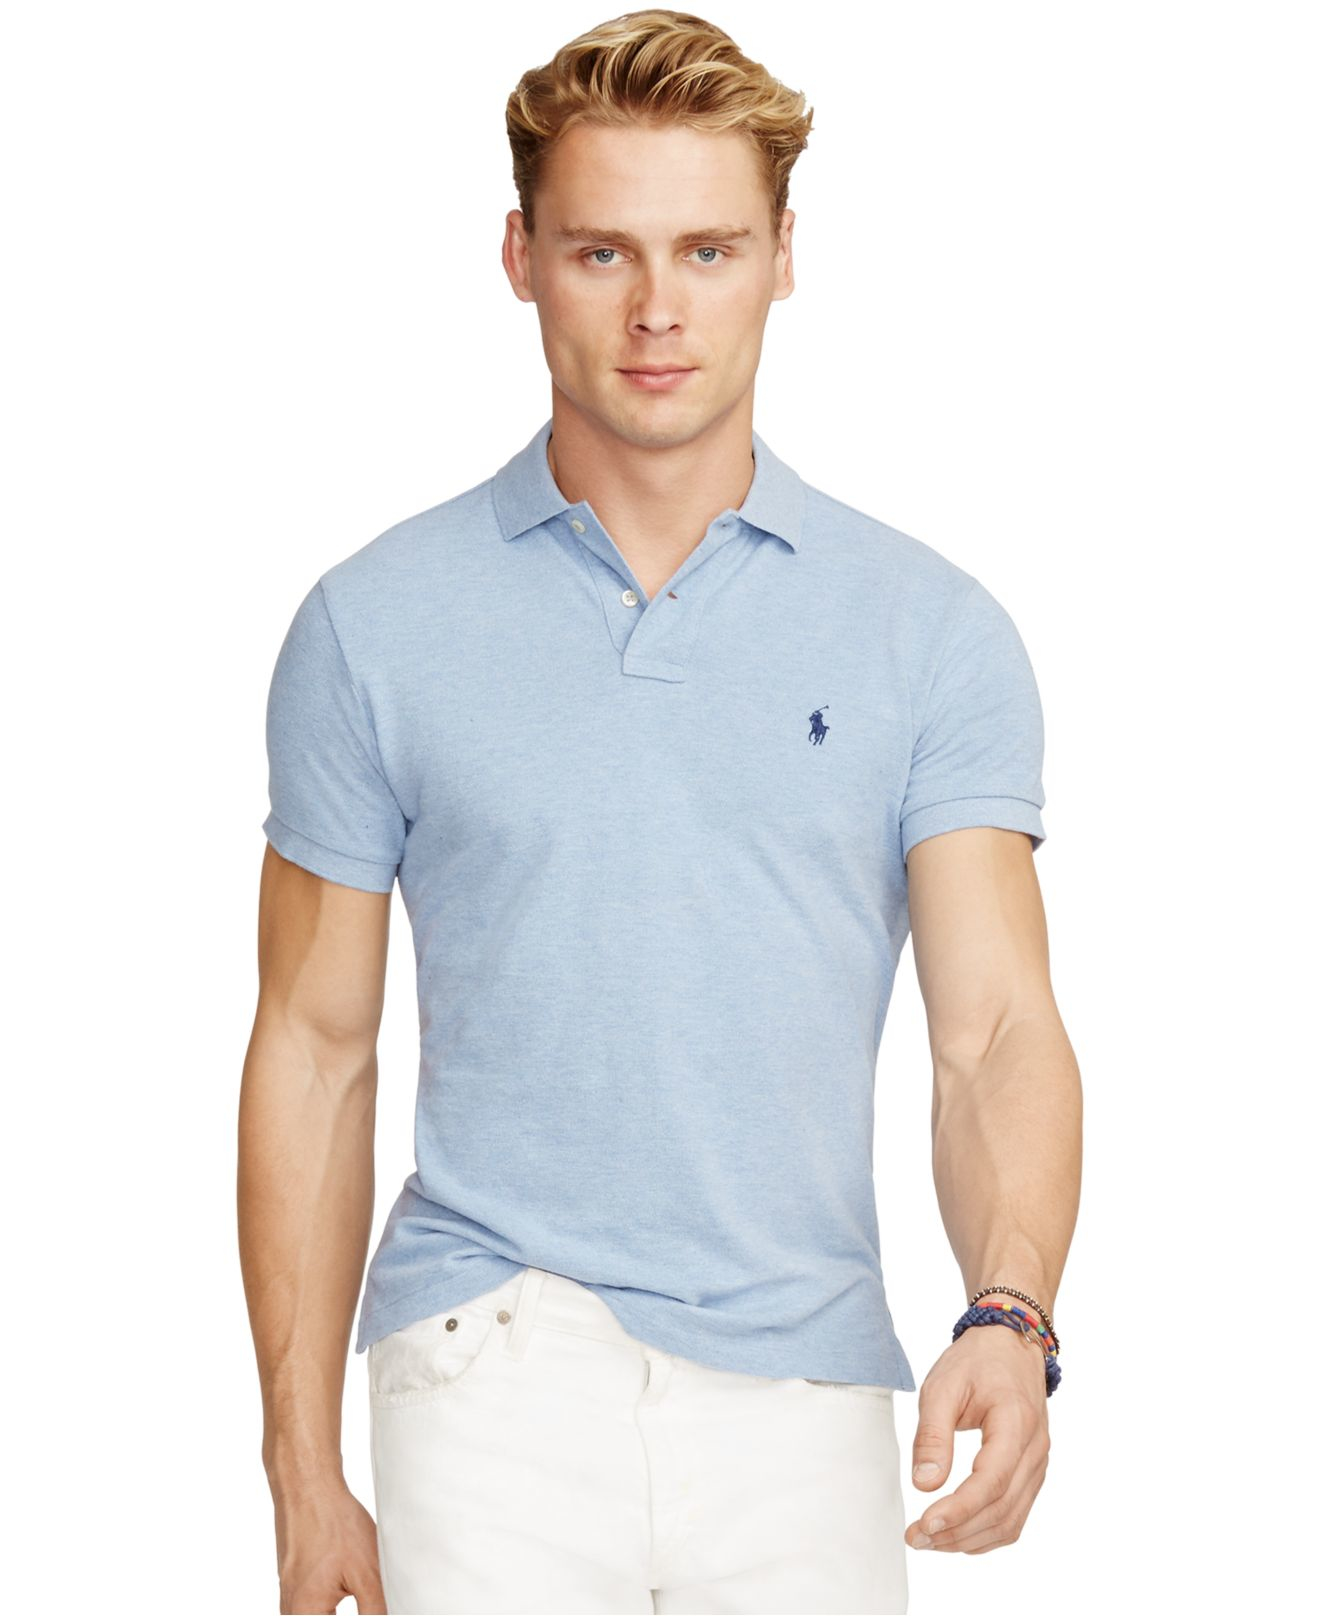 Polo ralph lauren men 39 s custom fit mesh polo shirt in blue for Ralph lauren custom fit mesh polo shirt